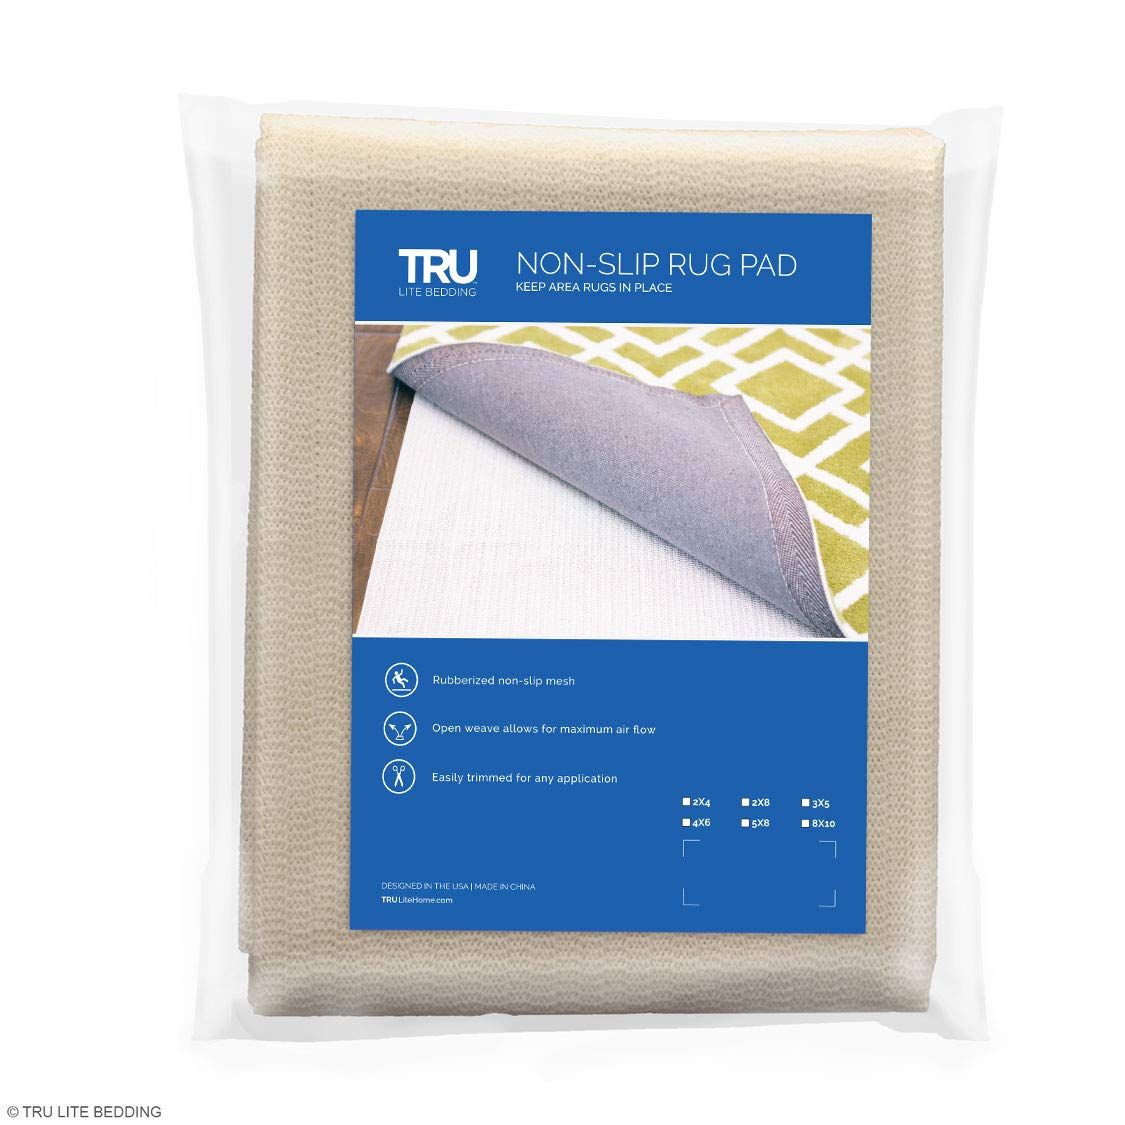 TRU Lite Rug Gripper - Non-Slip Rug Pad for Hardwood Floors - Non Skid Washable Furniture Pad - Lock Area Rugs, Mats, Carpets, Furniture in Place - Trim to fit Any Size - 2' x 8' by TRU Lite Bedding (Image #9)